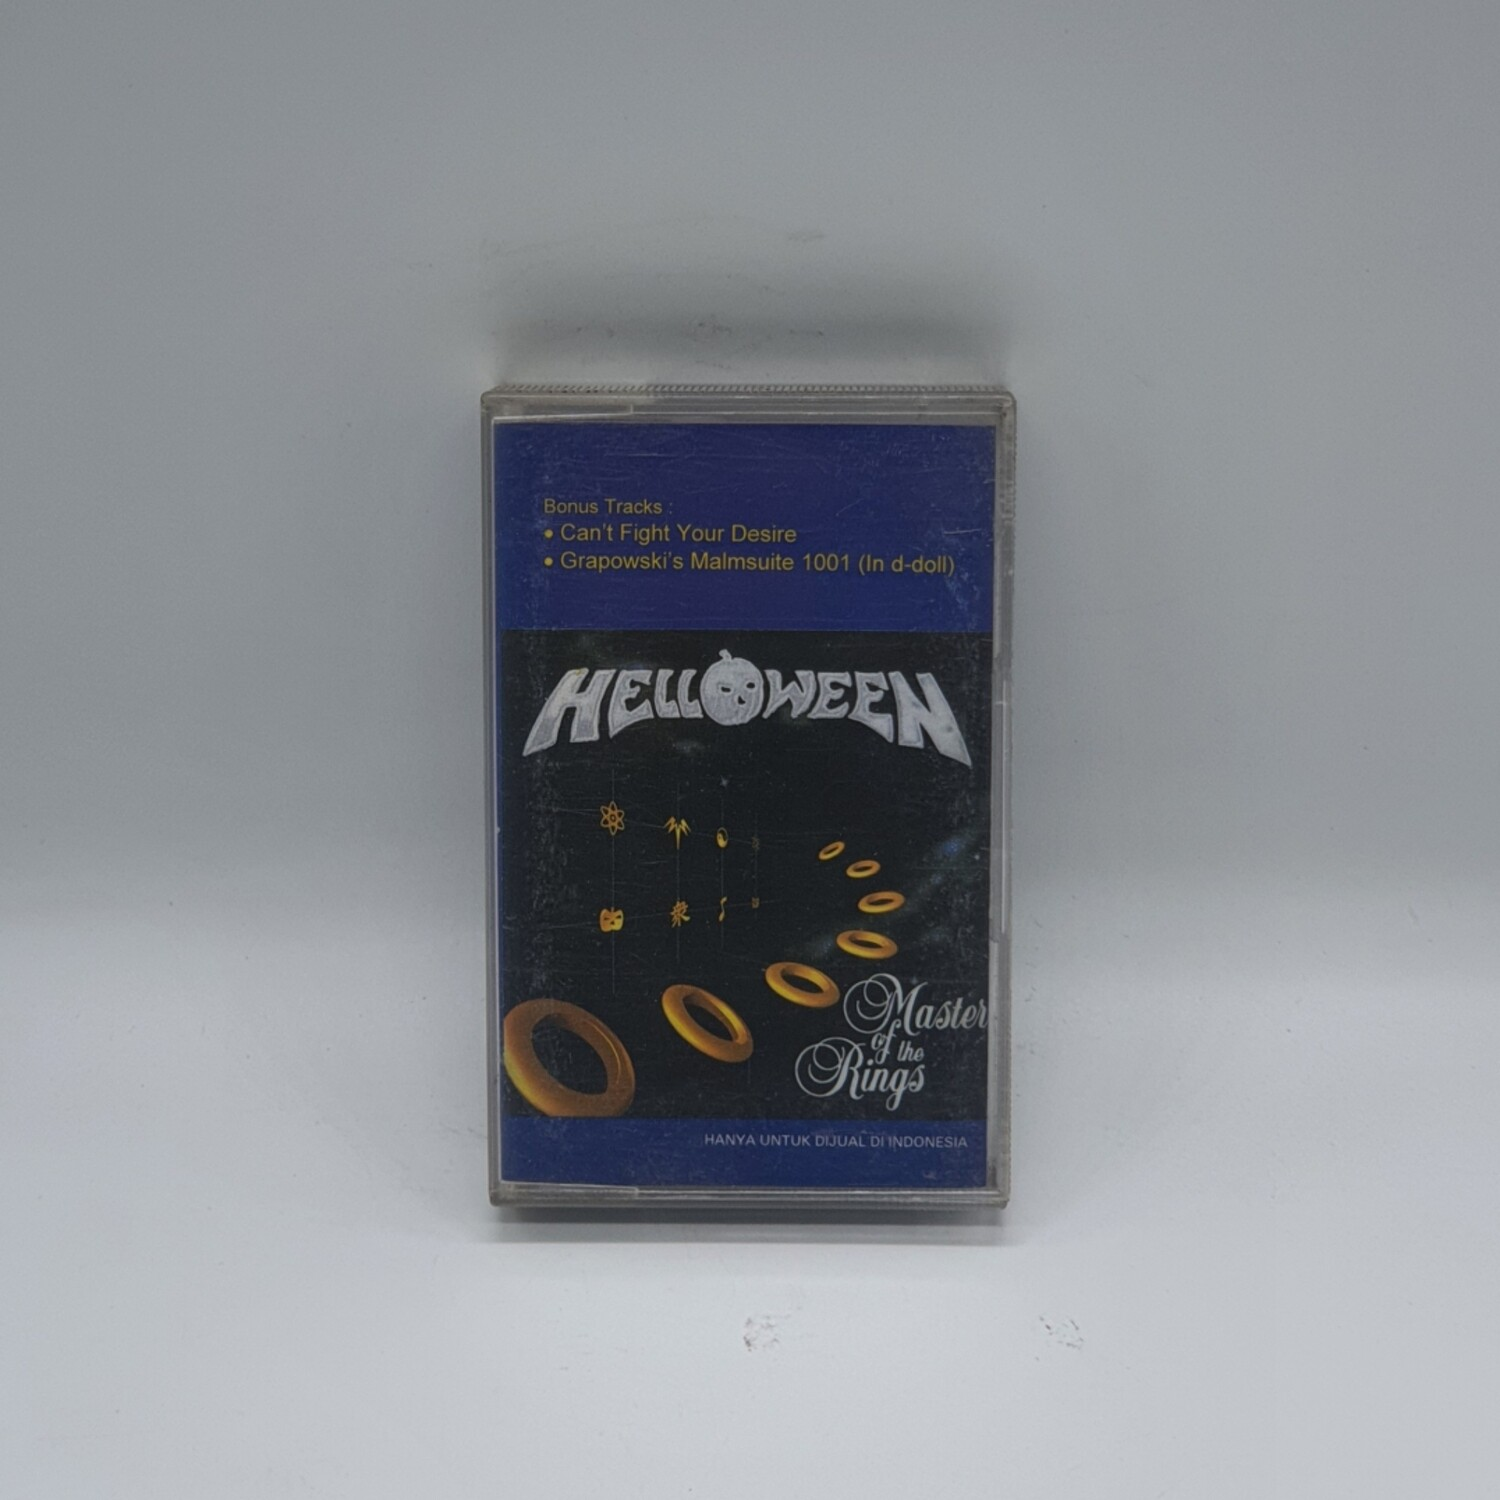 [USED] HELLOWEEN -MASTER OF THE RINGS- CASSETTE